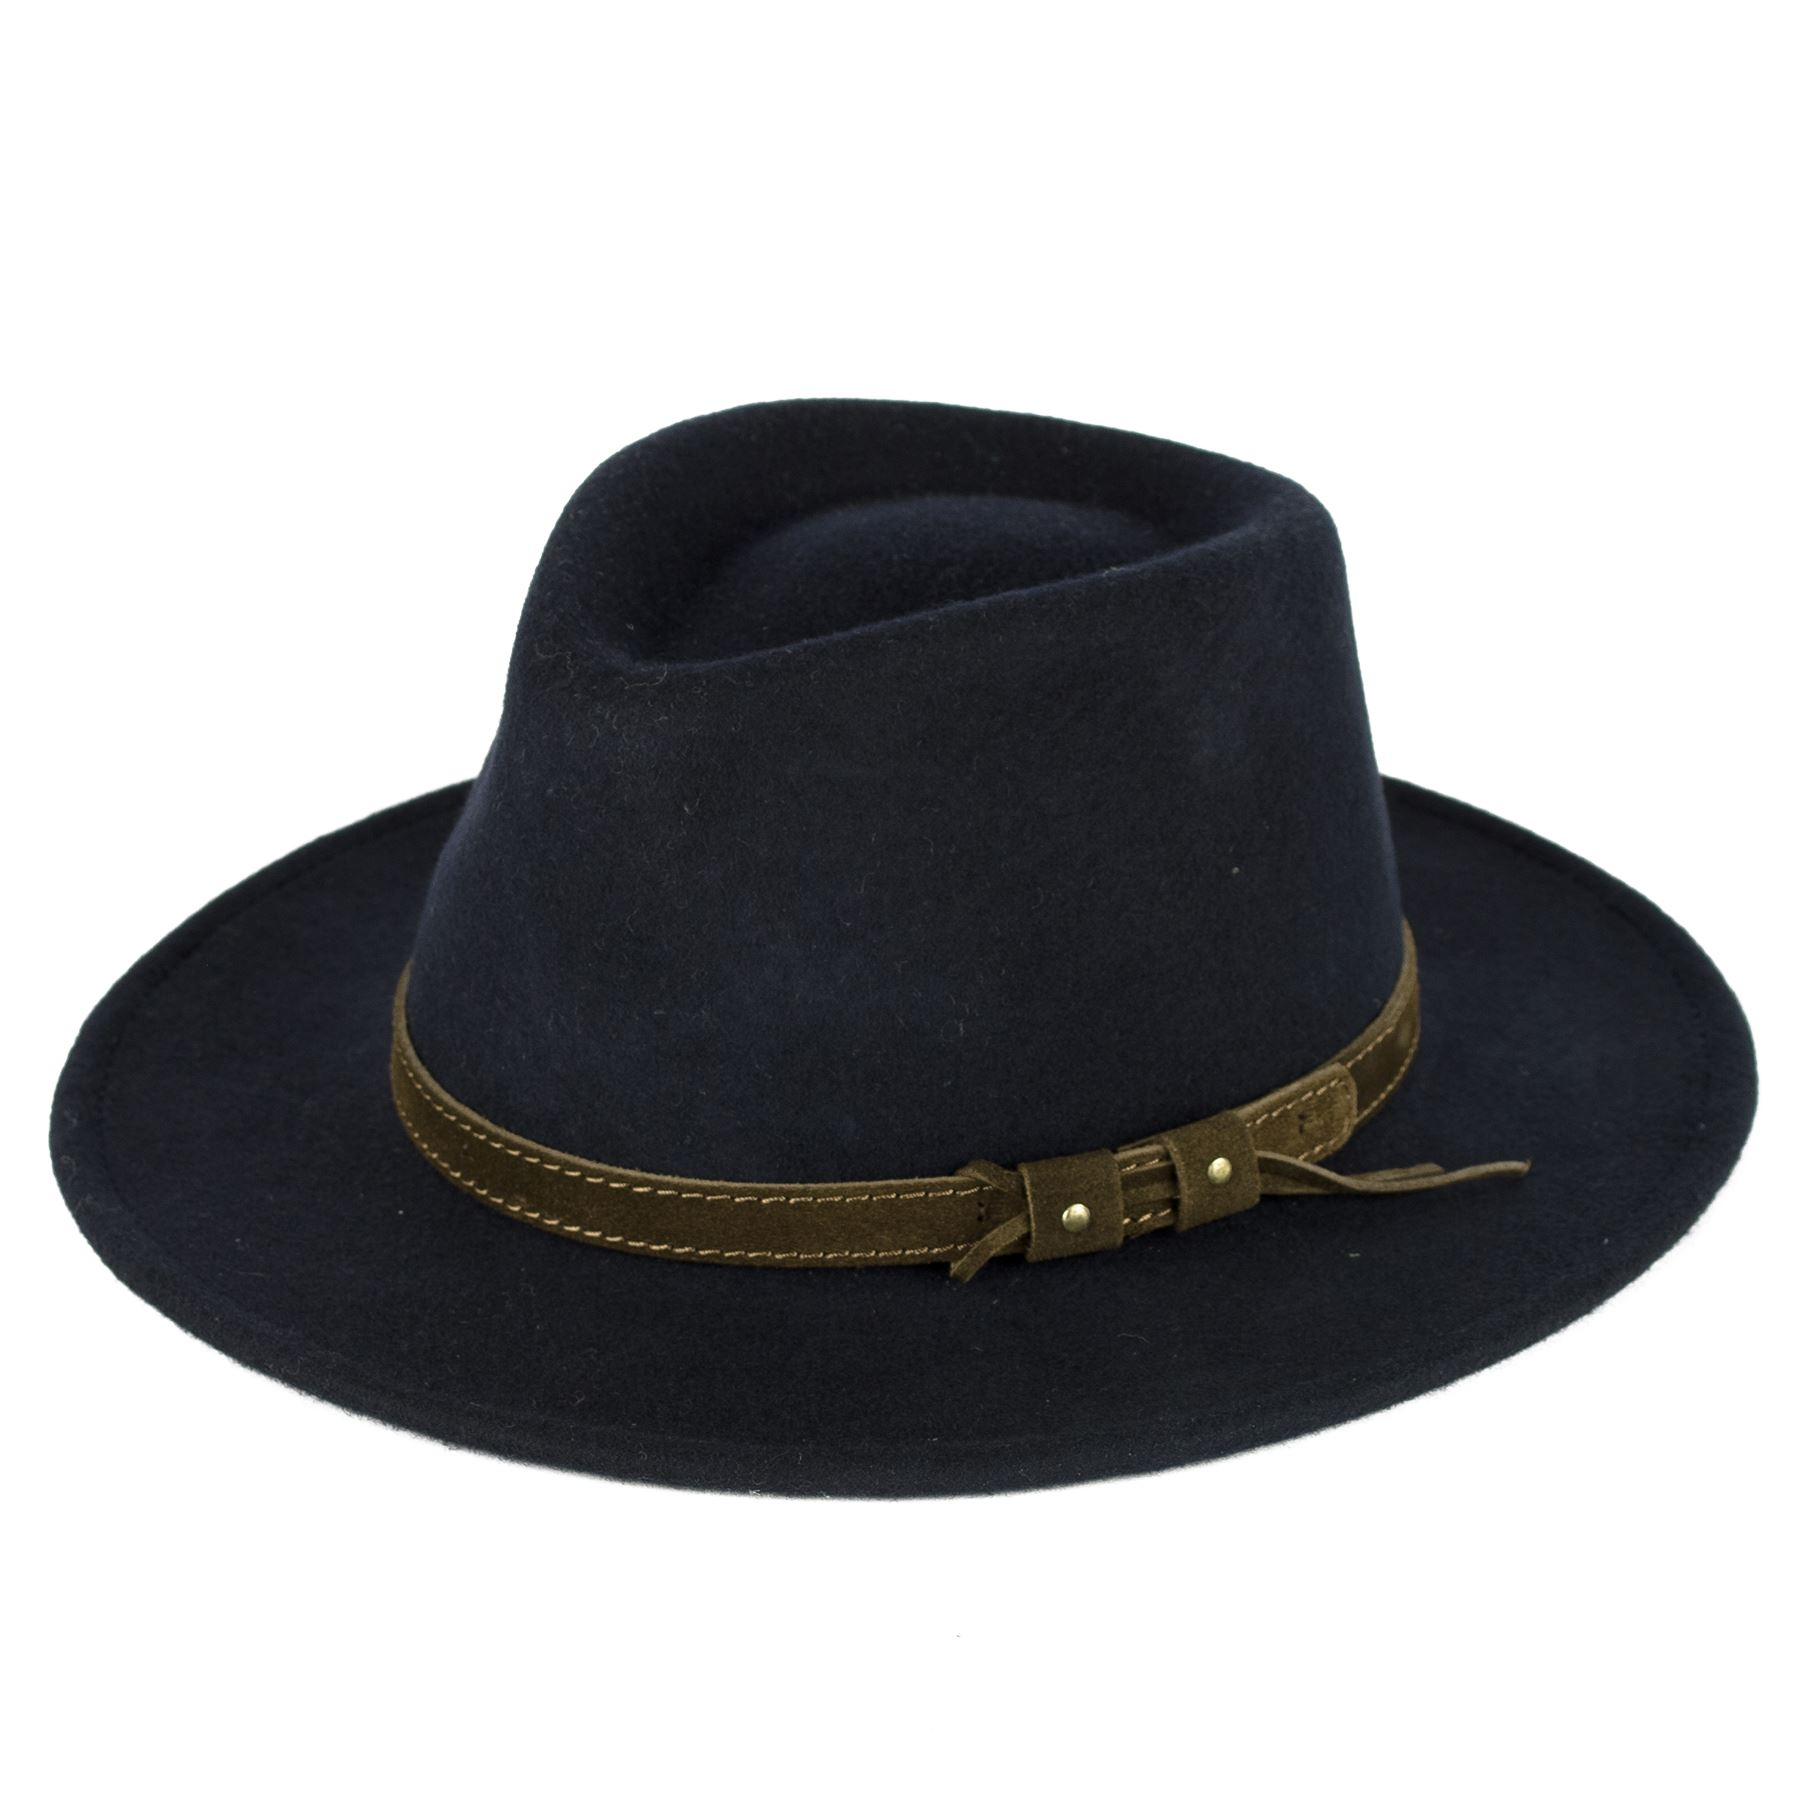 sashimicraft.ga sells Fedora Hats, Indiana Jones fedoras, Frank Sinatra hats, cowboy hats, bowlers, panama hats and other style hats by Stetson, Kangol and more. JavaScript seems to be disabled in .